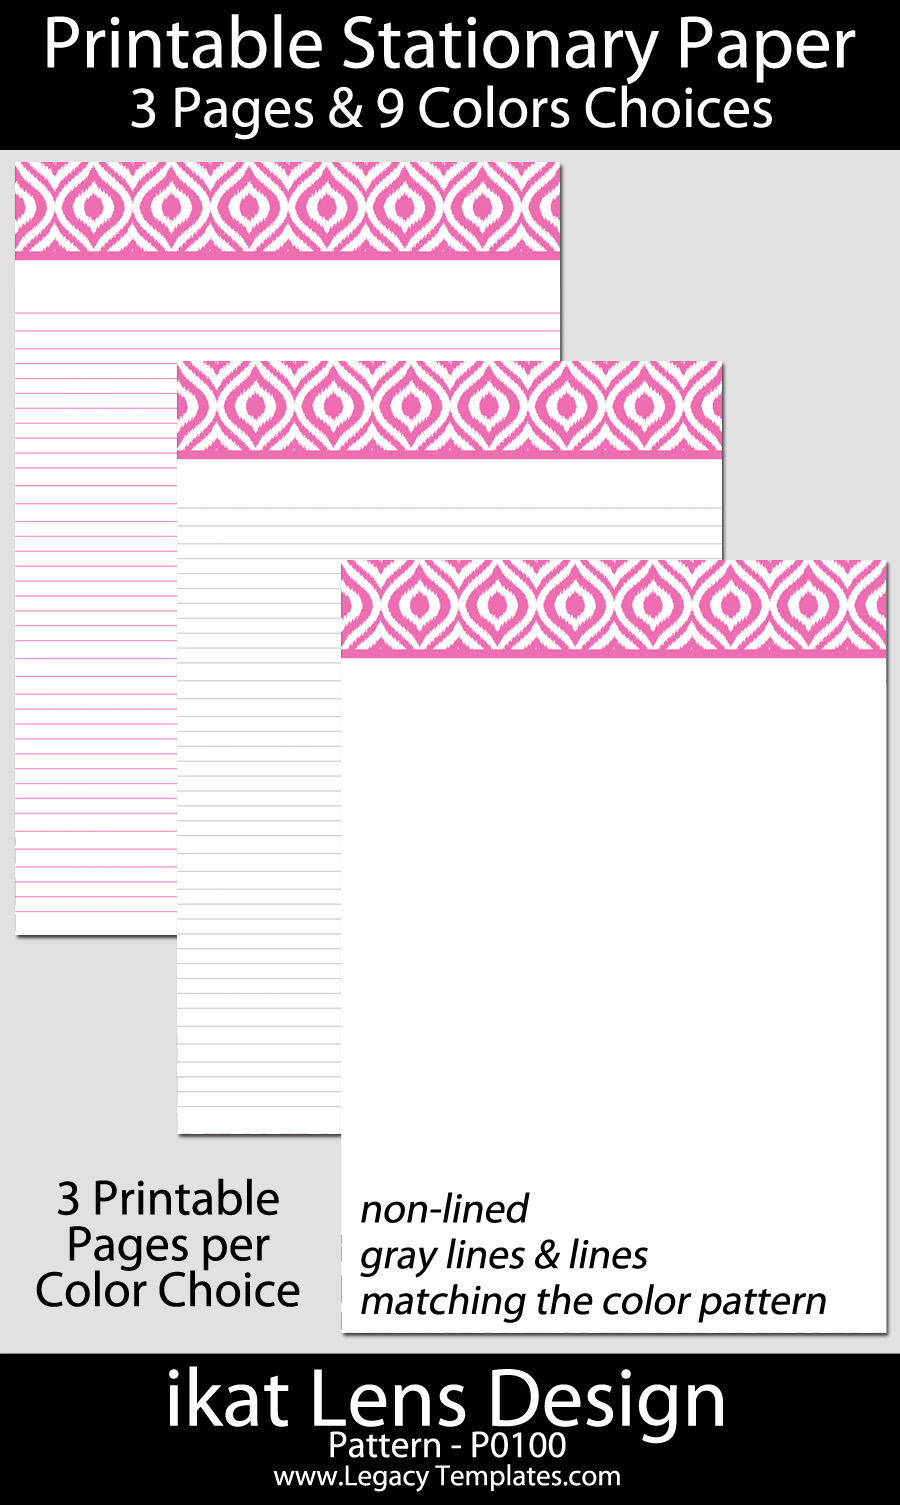 how to make downloadable stationery pdf